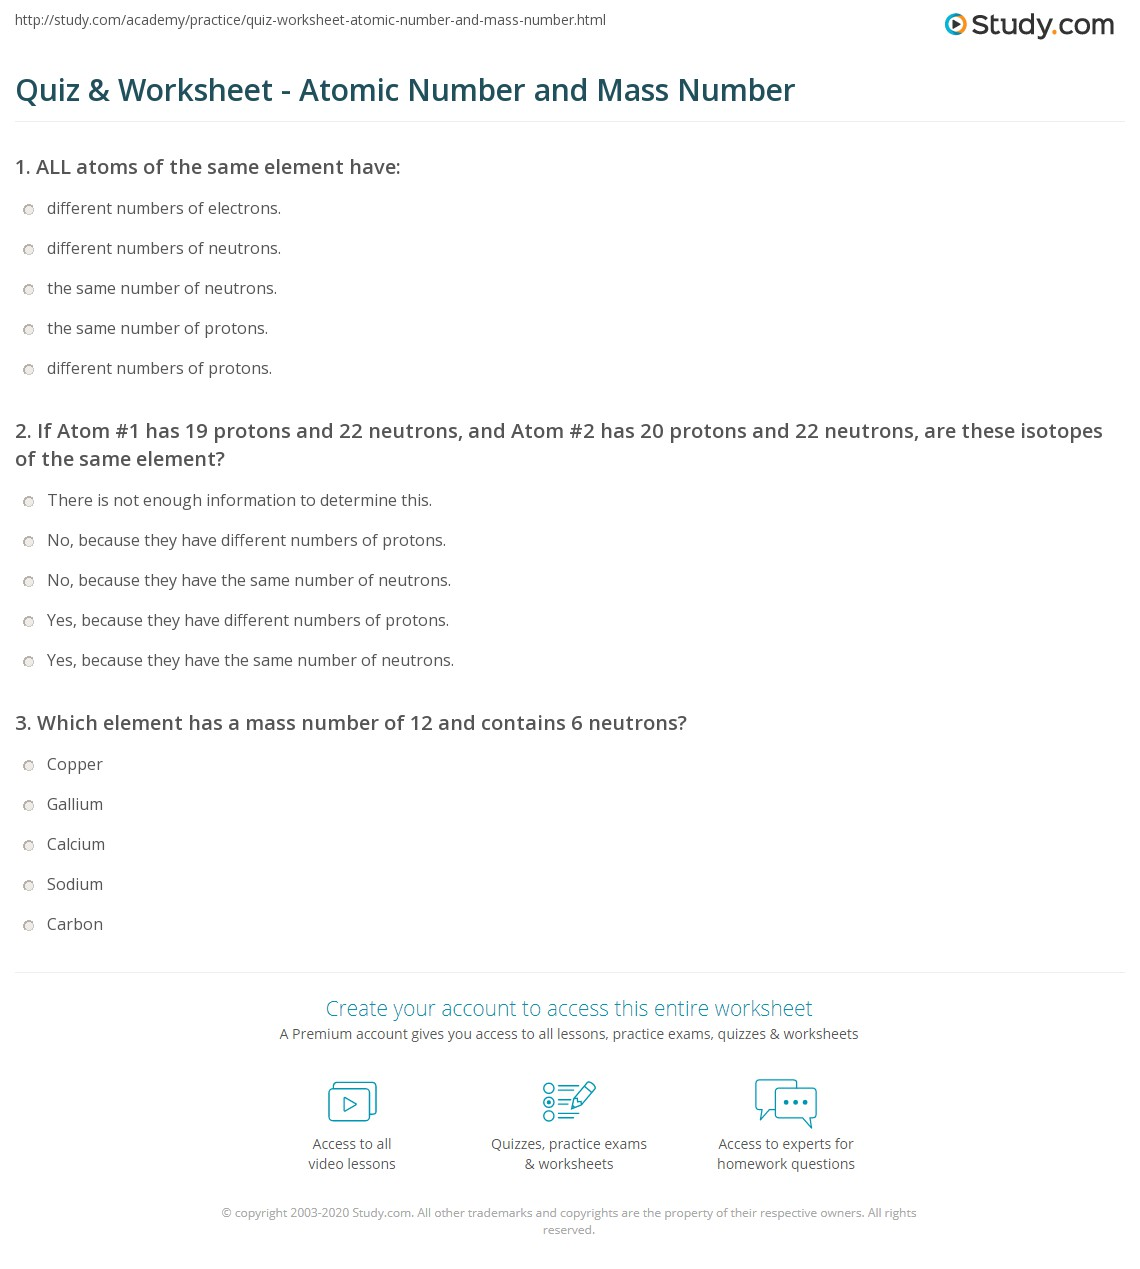 Quiz & Worksheet - Atomic Number and Mass Number | Study.com